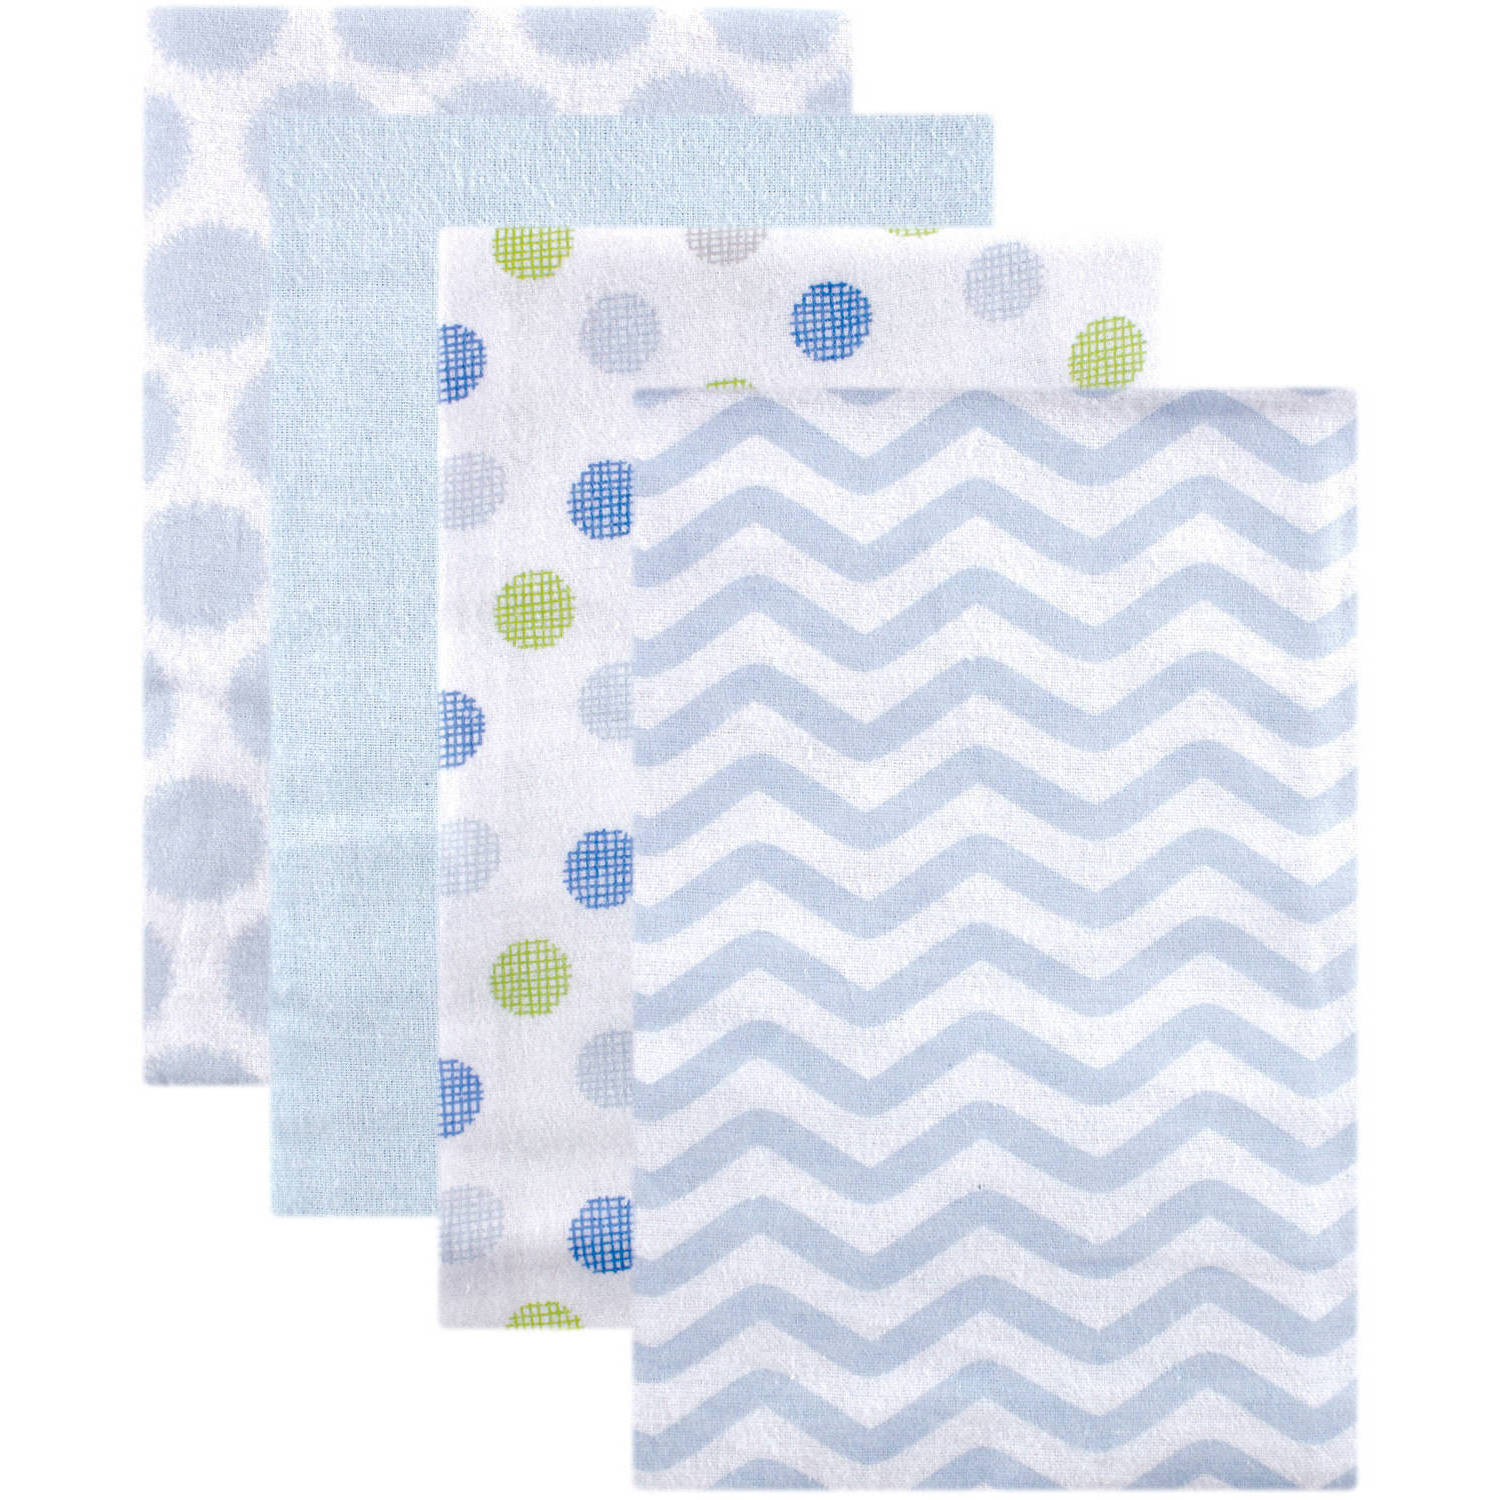 Luvable Friends Receiving Blankets Flannel, 4pk, Blue Dots